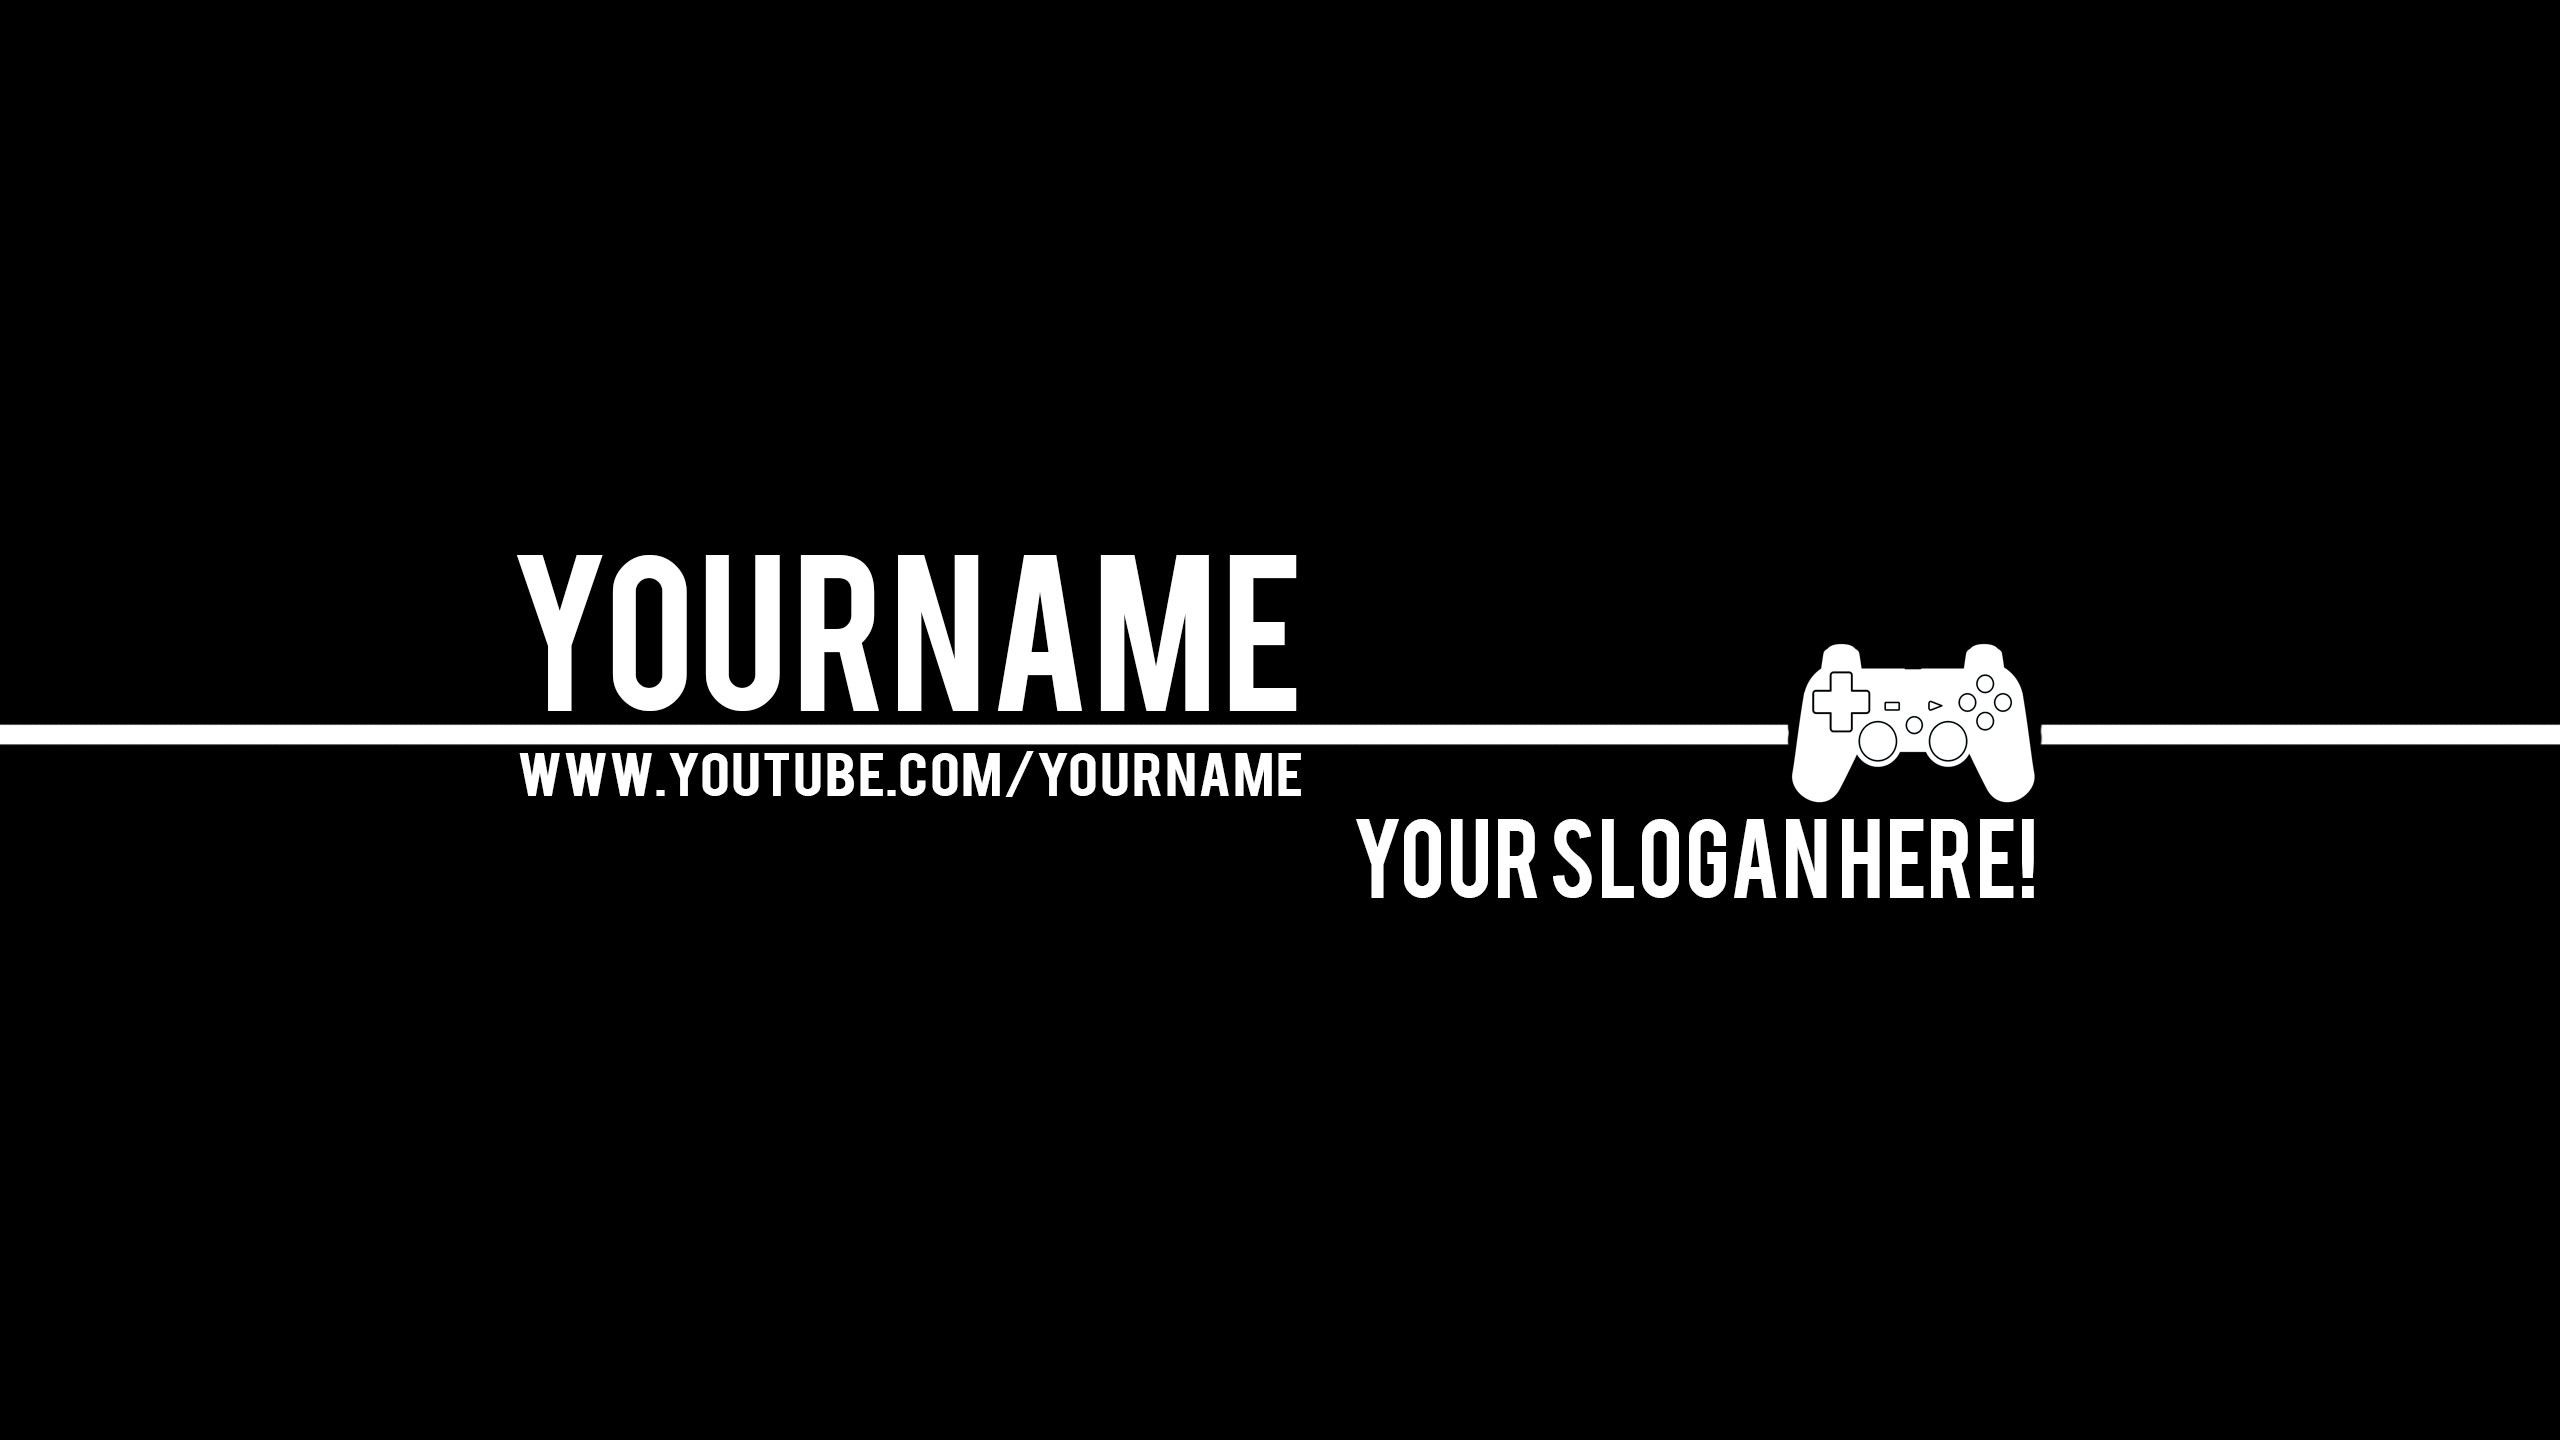 2560x1440 Banners 2015 2016 Bulbasuer Controller Gaming Youtube Banner Youtube Banner Backgrounds Youtube Banners Youtube Banner Template